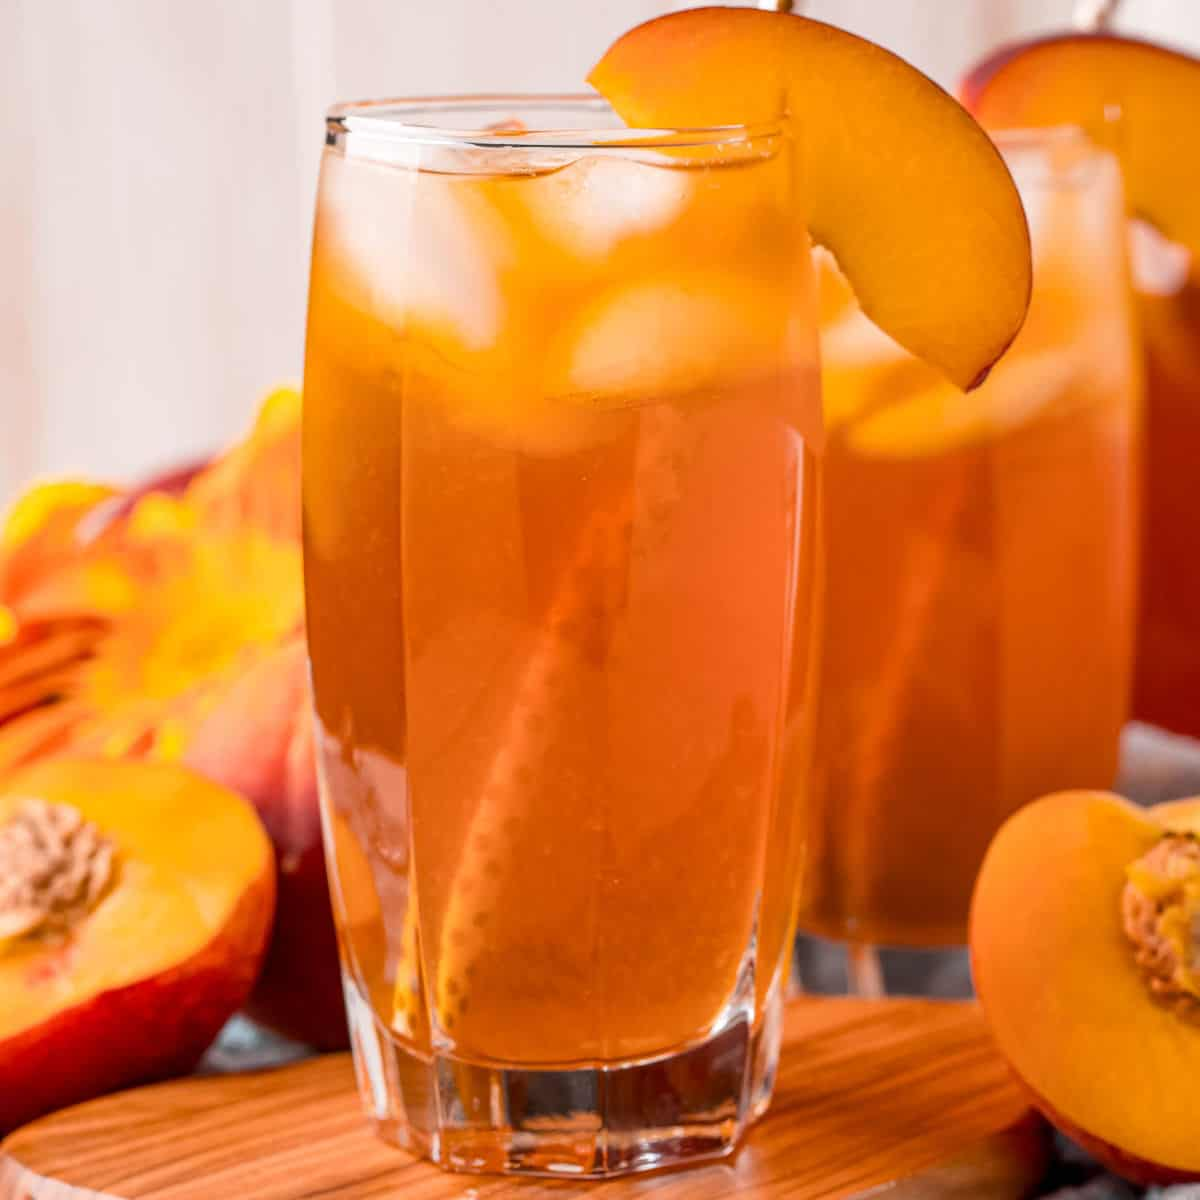 square image of two glasses of peach iced tea with a peach slice for garnish